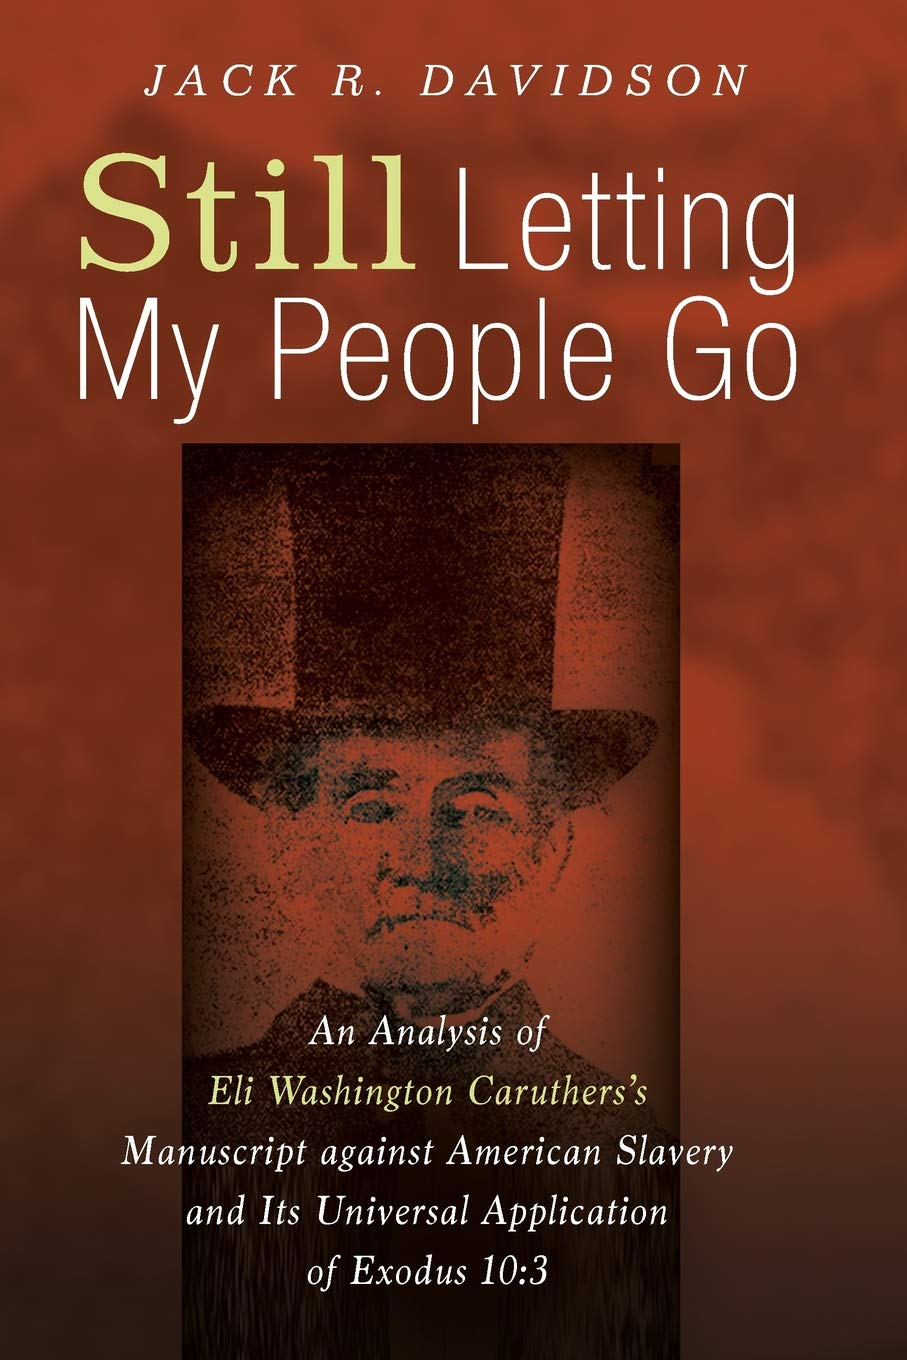 Download Still Letting My People Go: An Analysis of Eli Washington Caruthers's Manuscript against American Slavery and Its Universal Application of Exodus 10:3 ebook